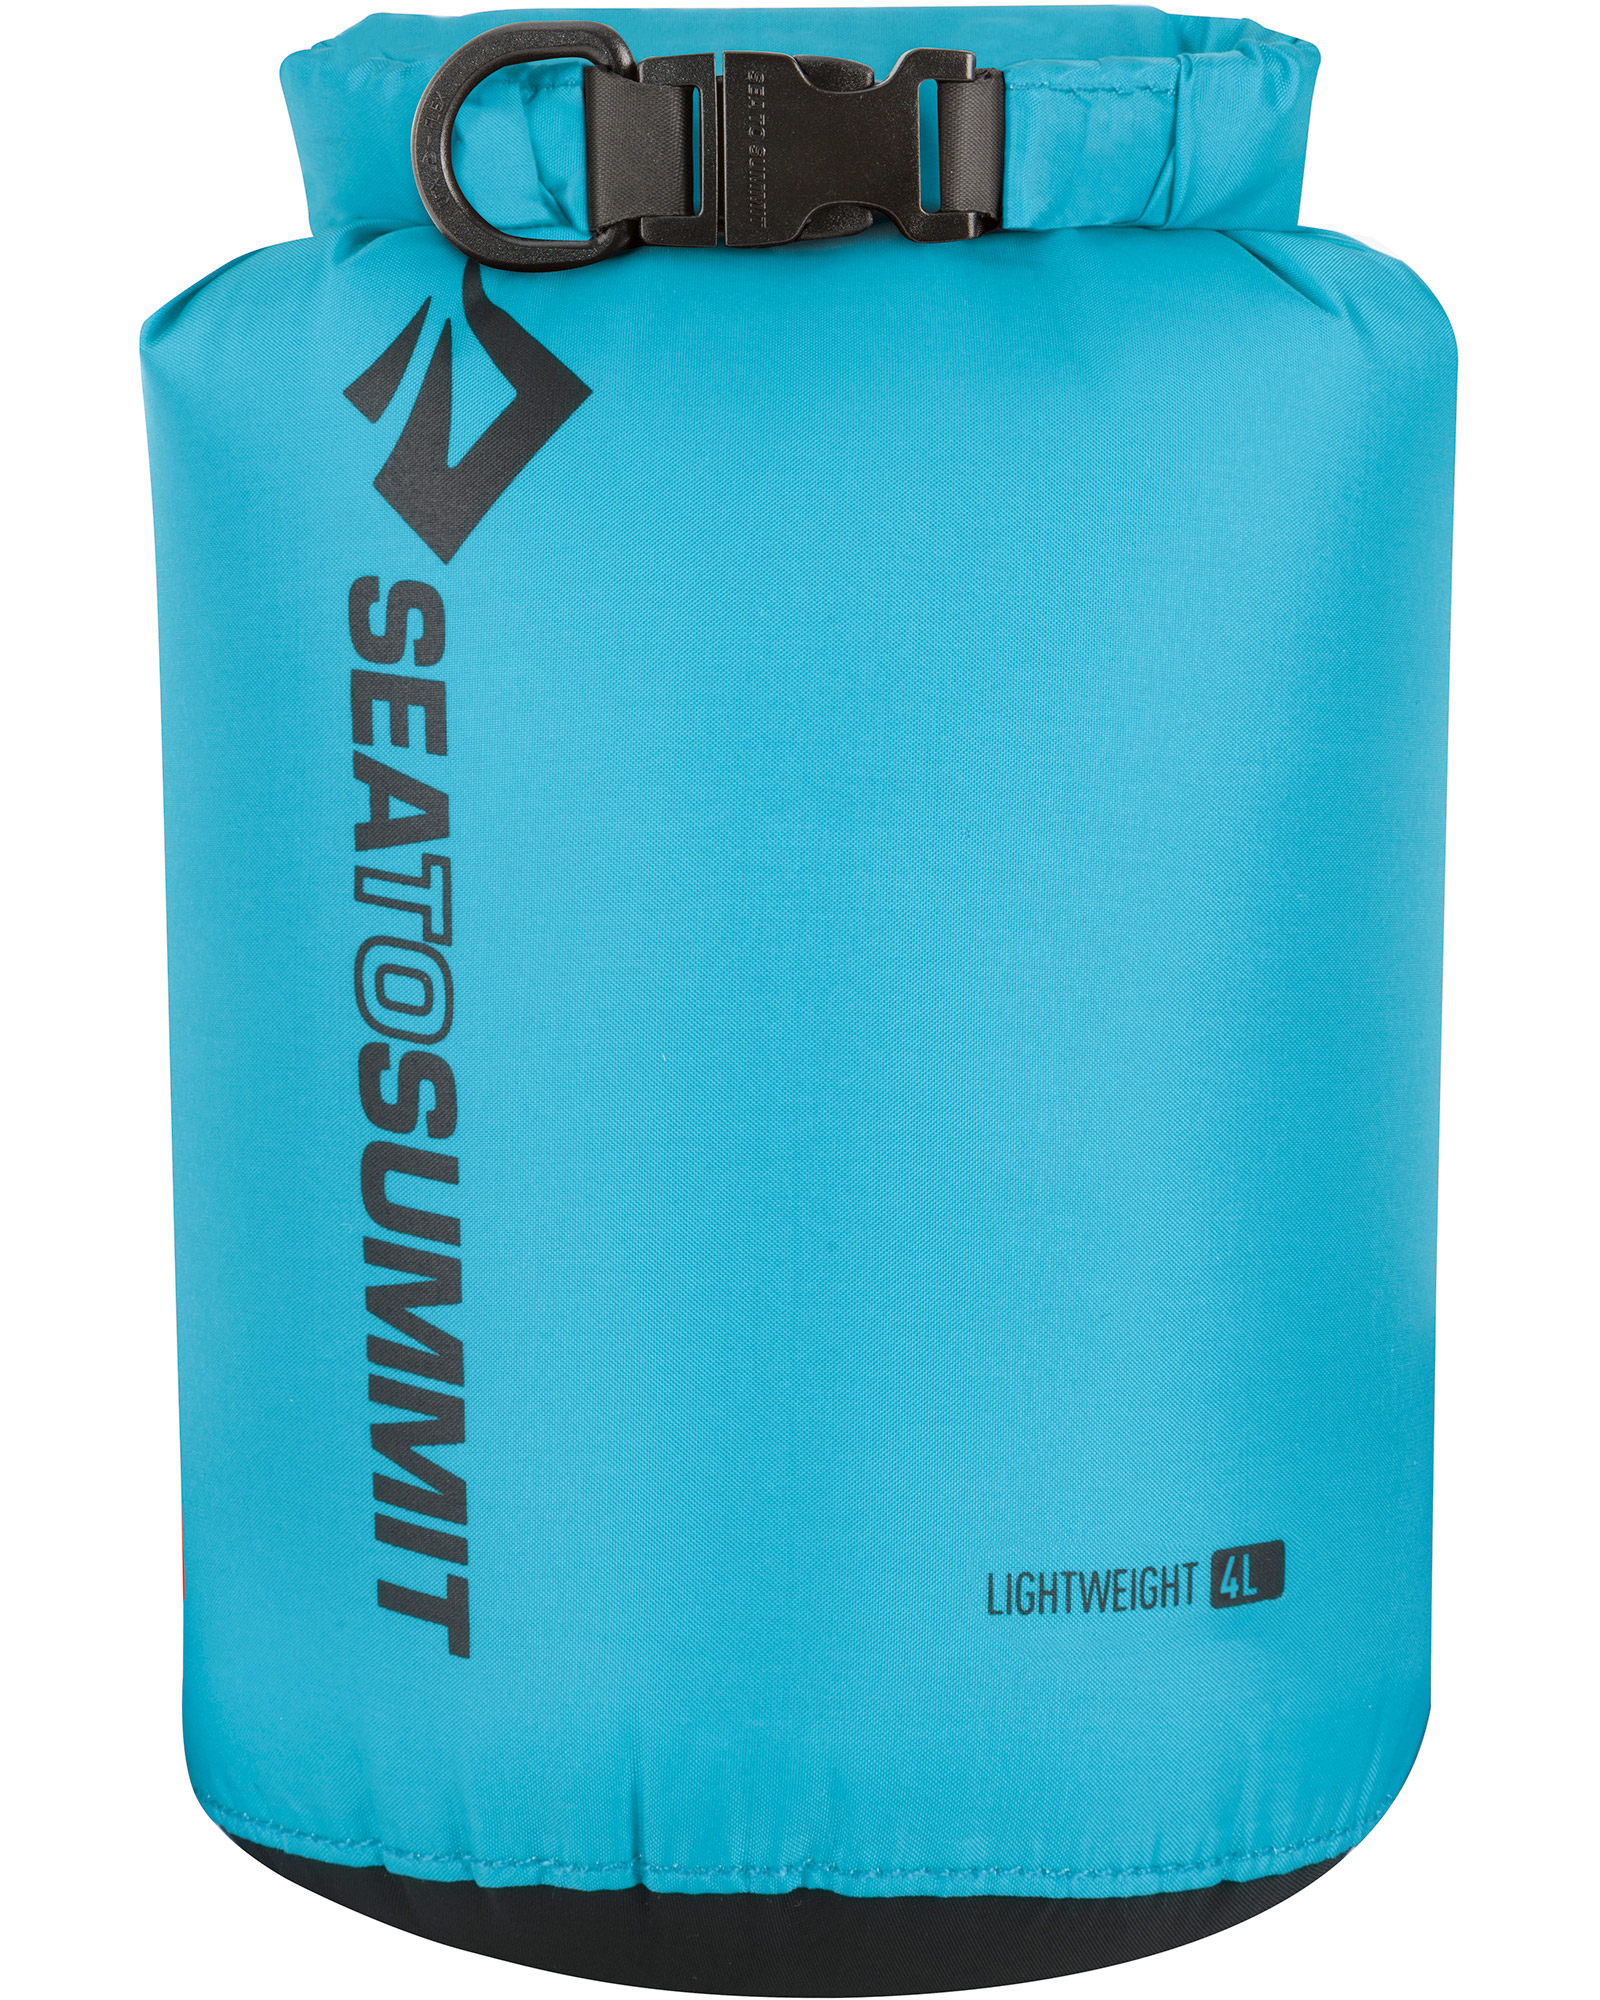 Product image of Sea to Summit Lightweight Dry Sack 4L